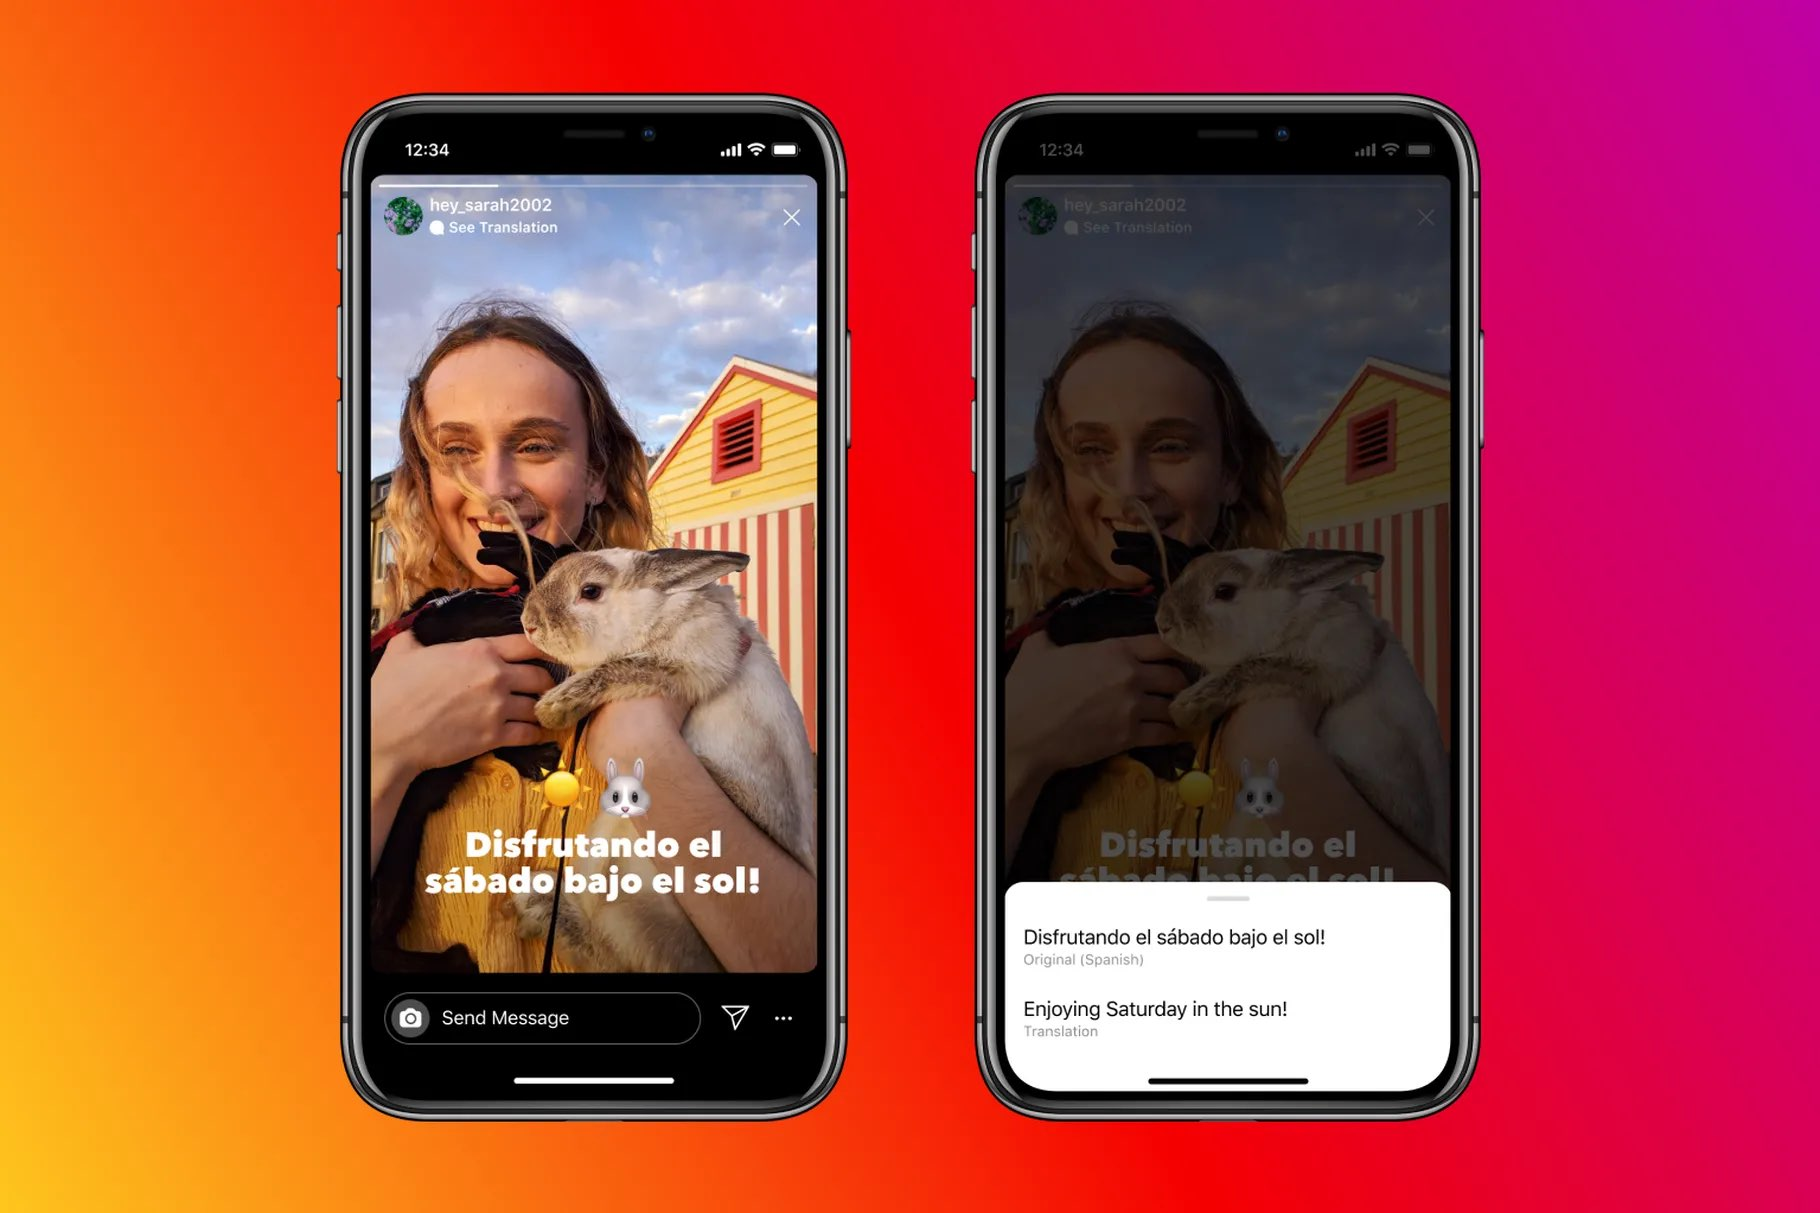 Two screenshots showing how to translate Instagram stories text into Spanish on iPhone